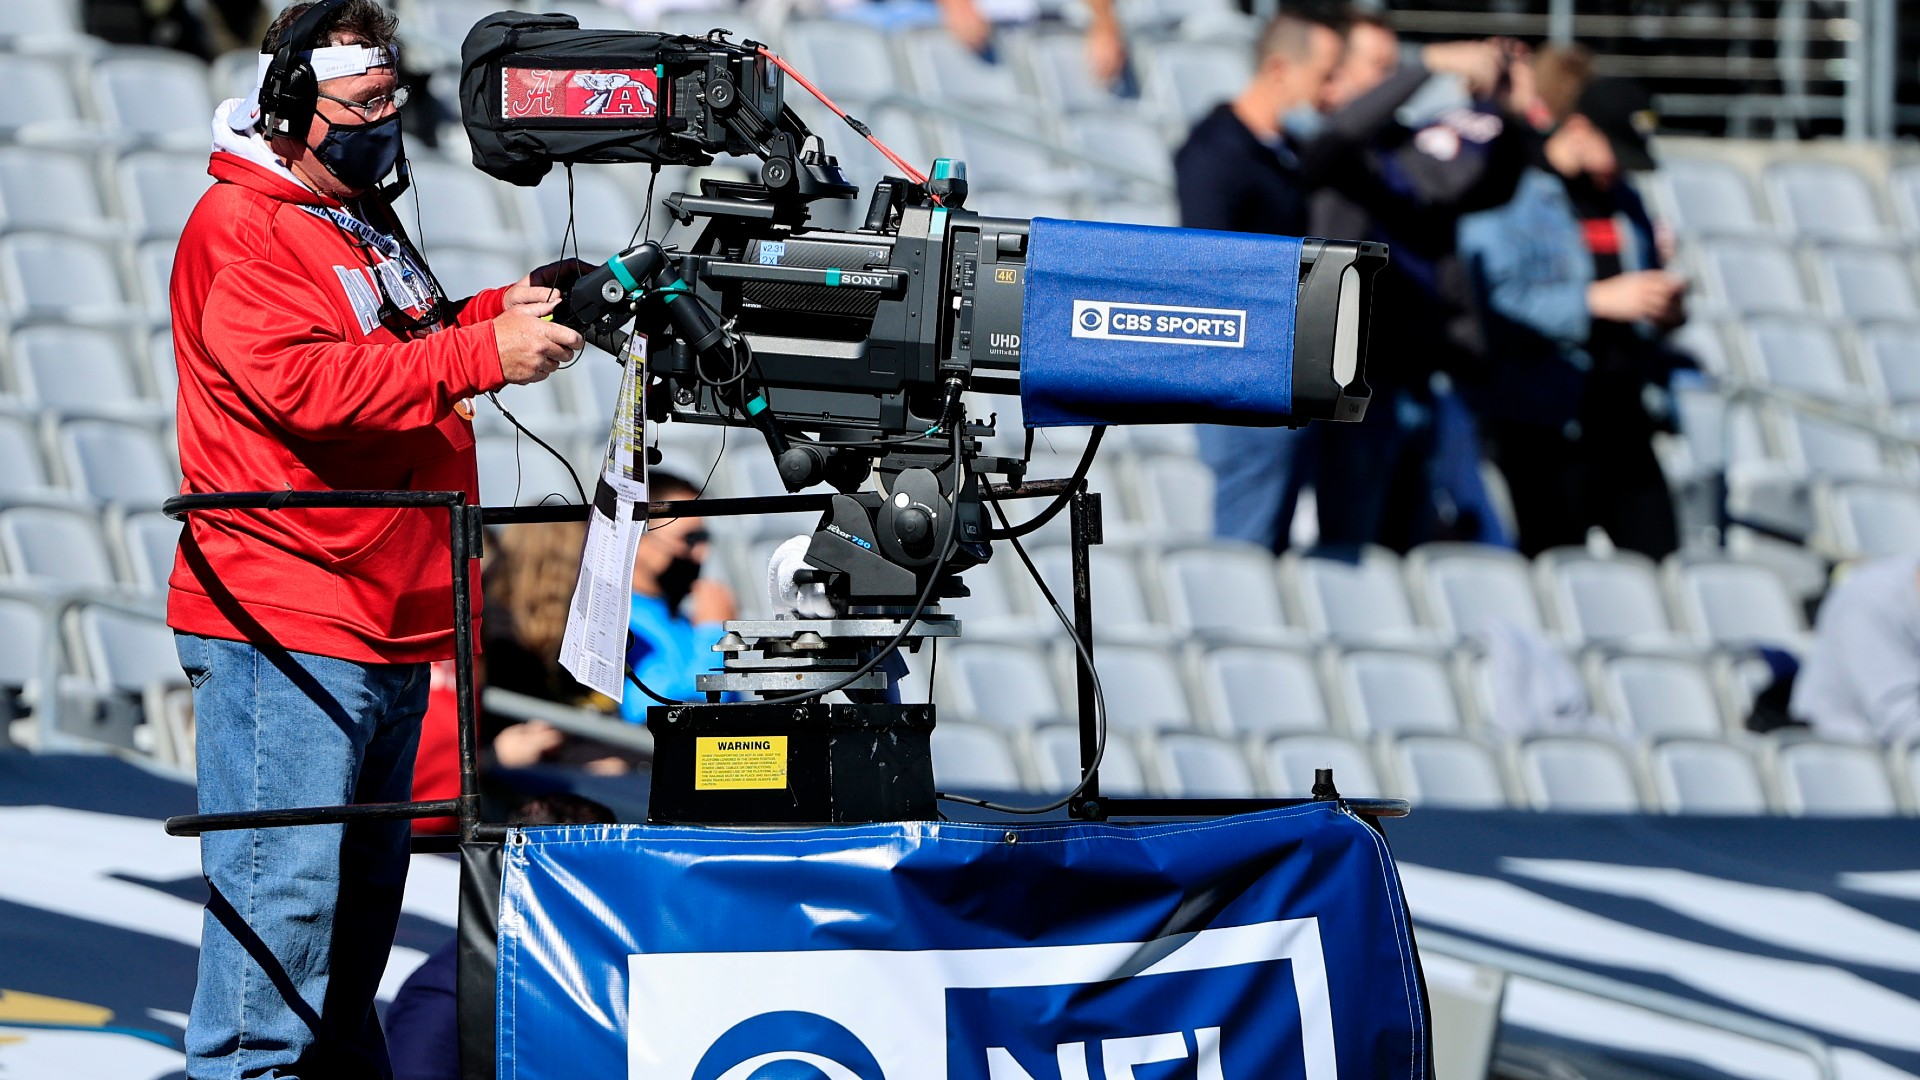 Who is broadcasting Super Bowl 2021? A guide to the TV channel, announcers & more on Super Bowl 55 rights